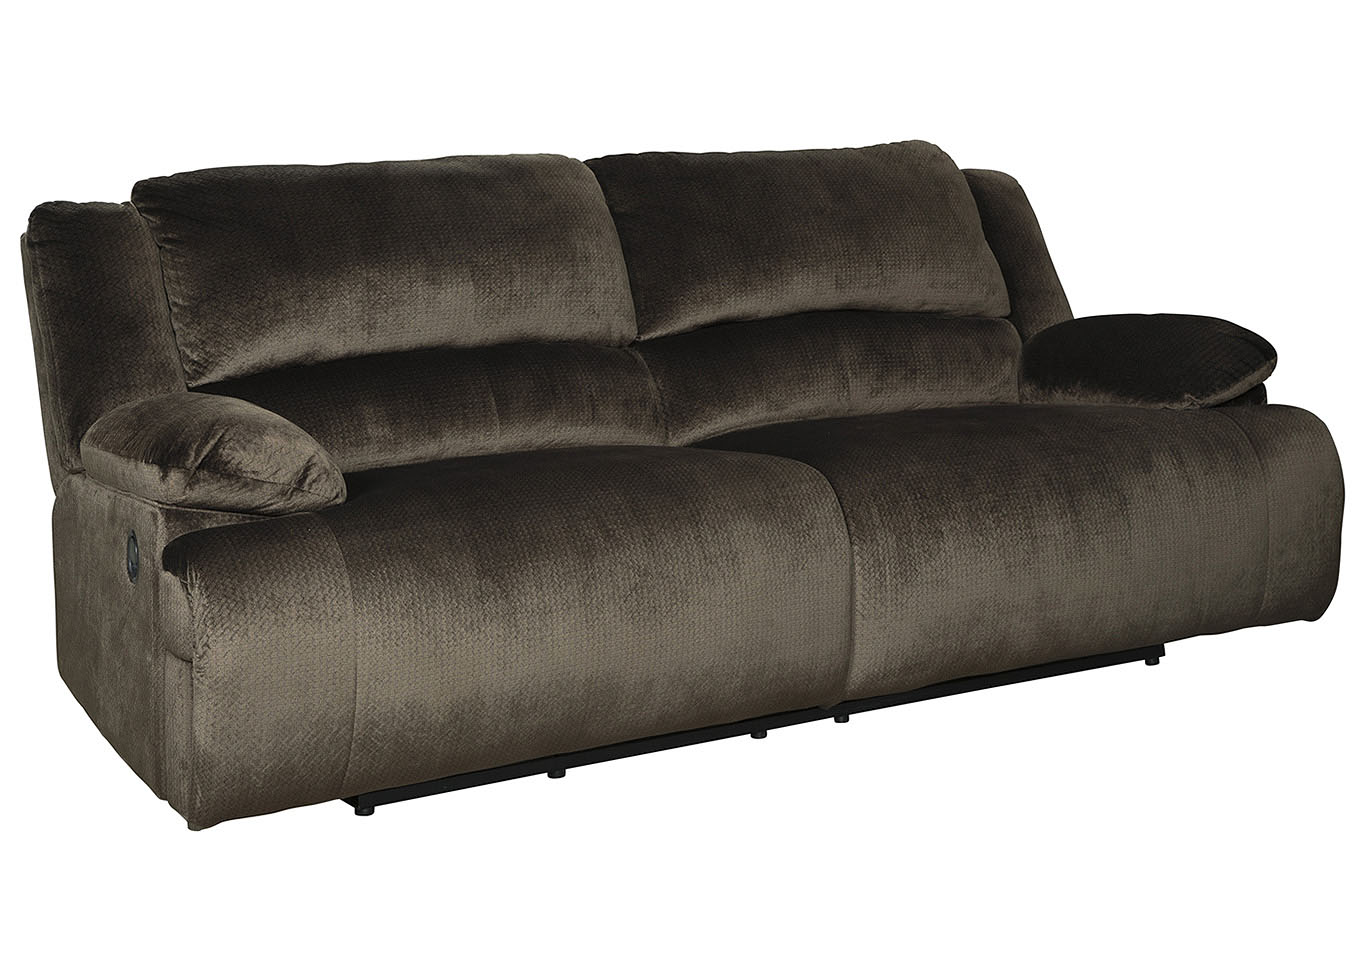 Clonmel Chocolate 2 Seat Reclining Sofa,Signature Design By Ashley